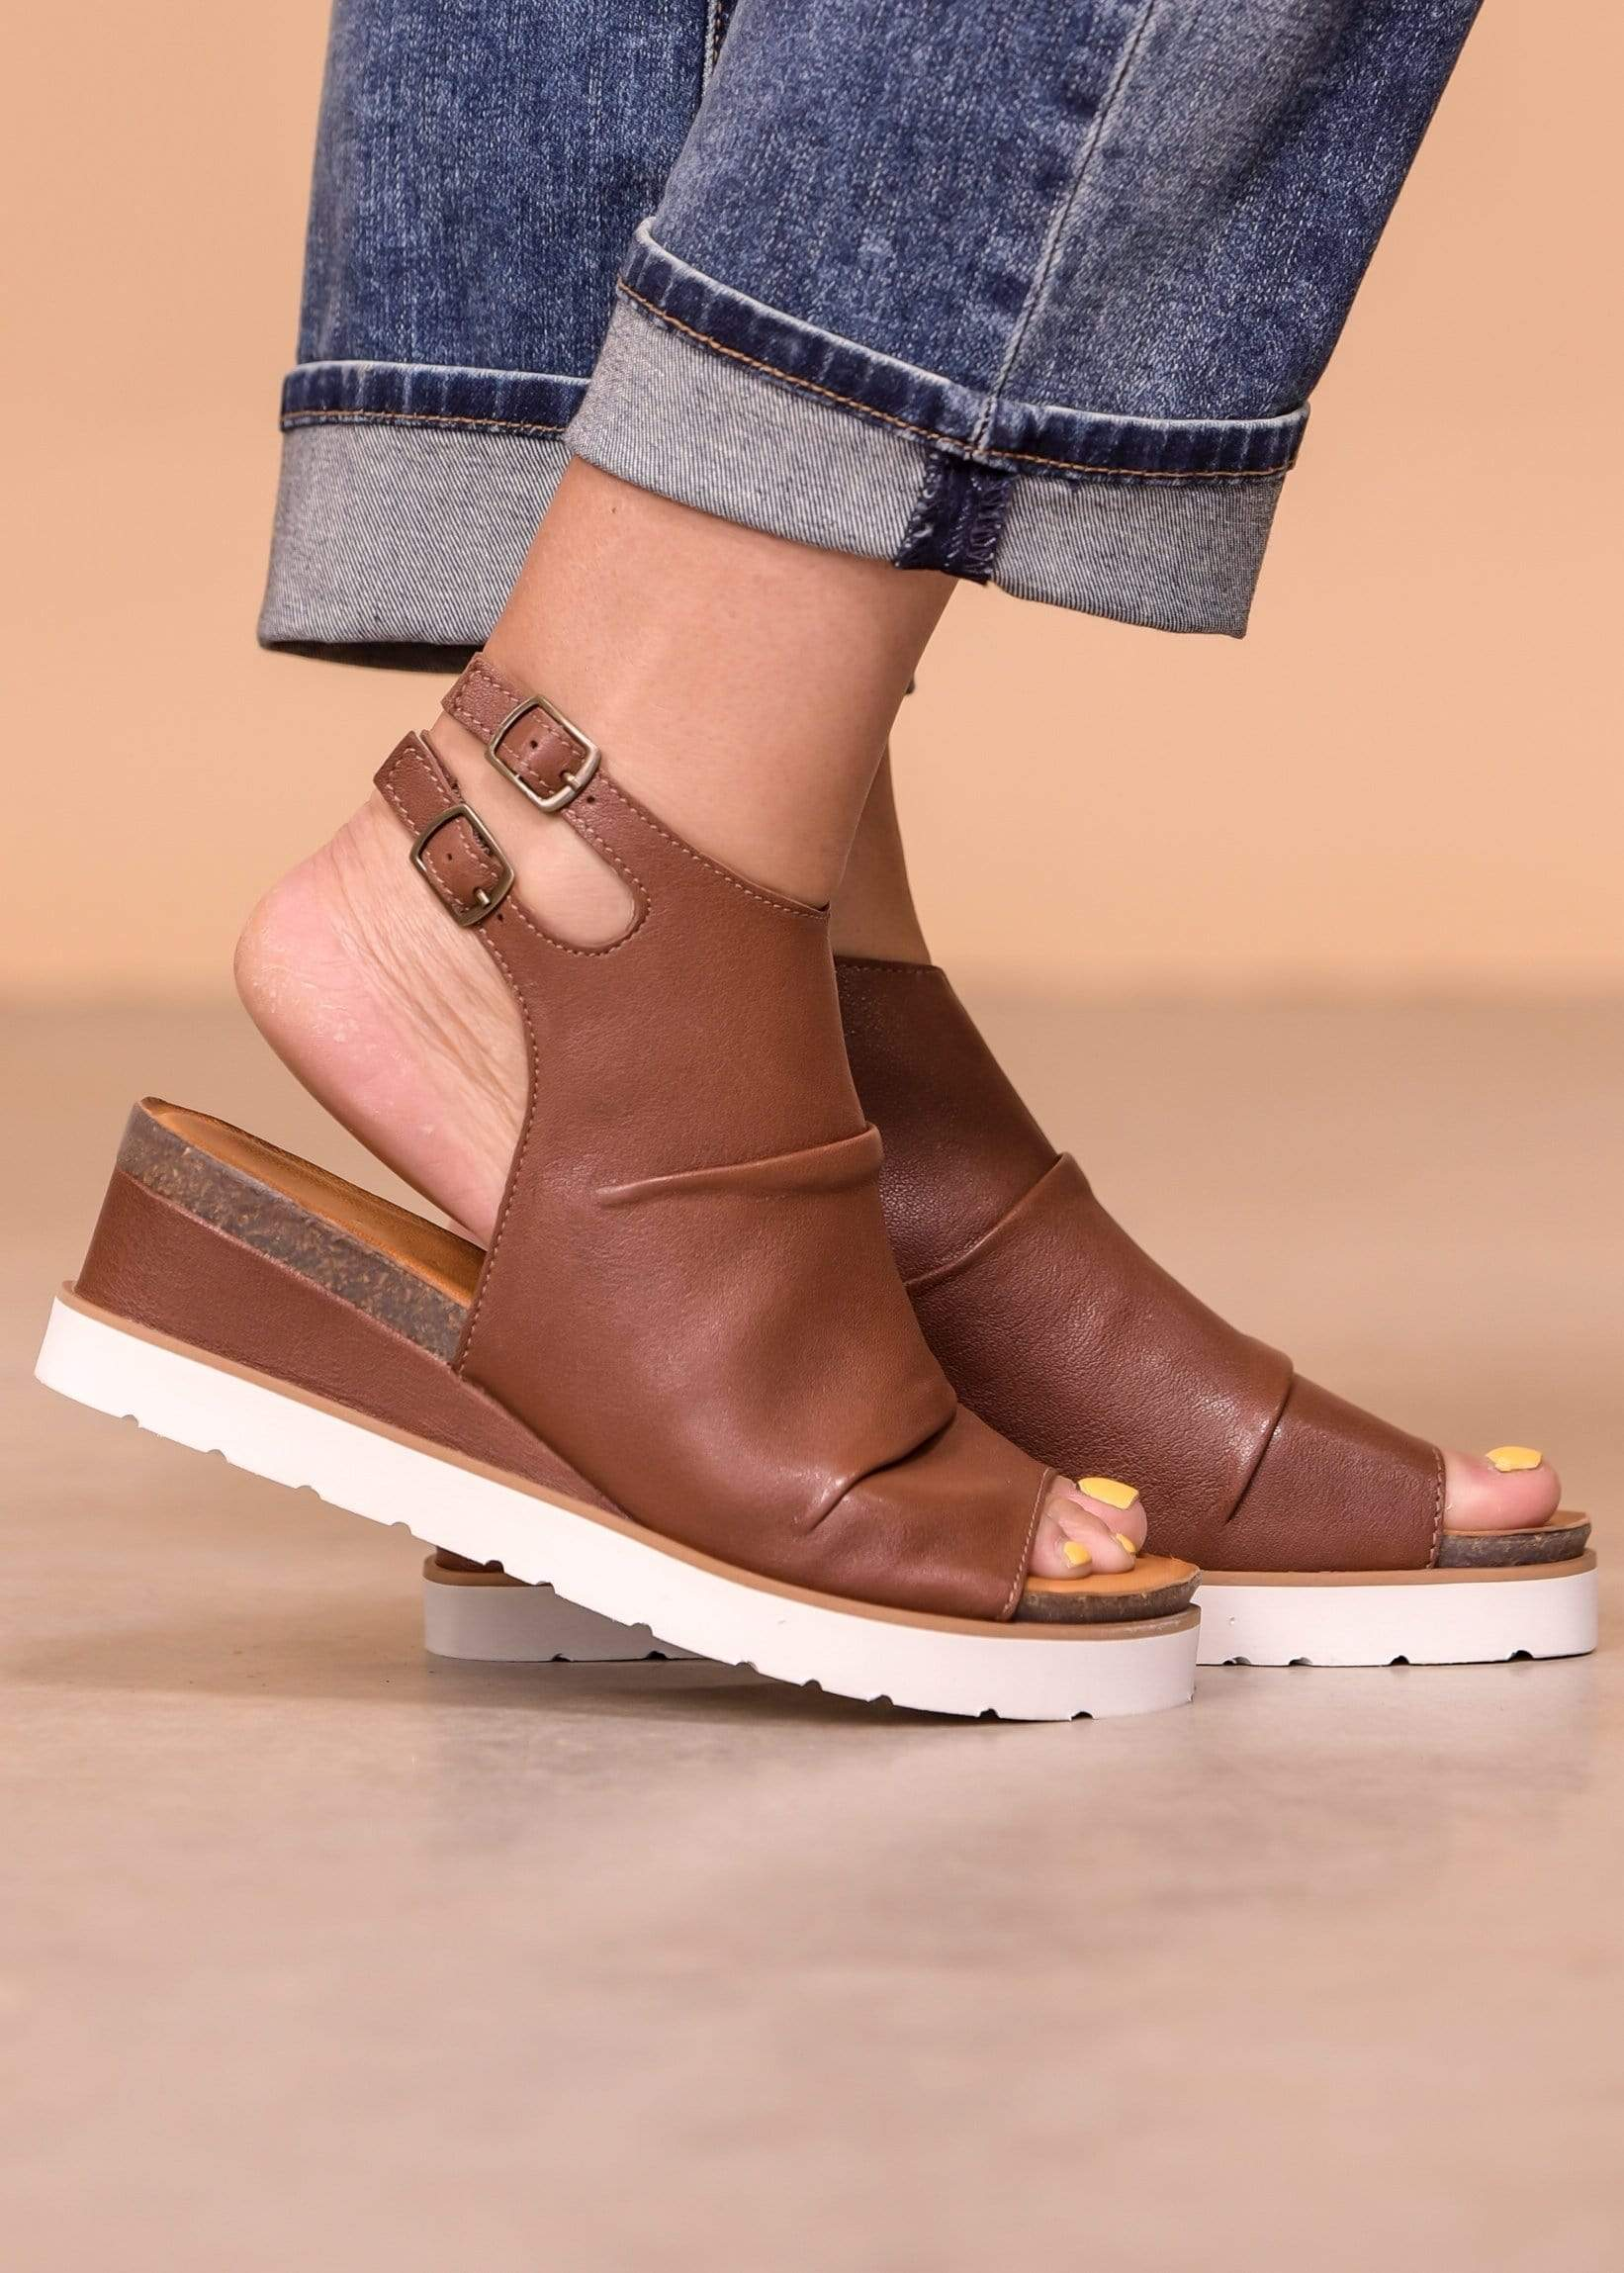 Diba Wedges DIBA Leather Sandal - Gee Whiz